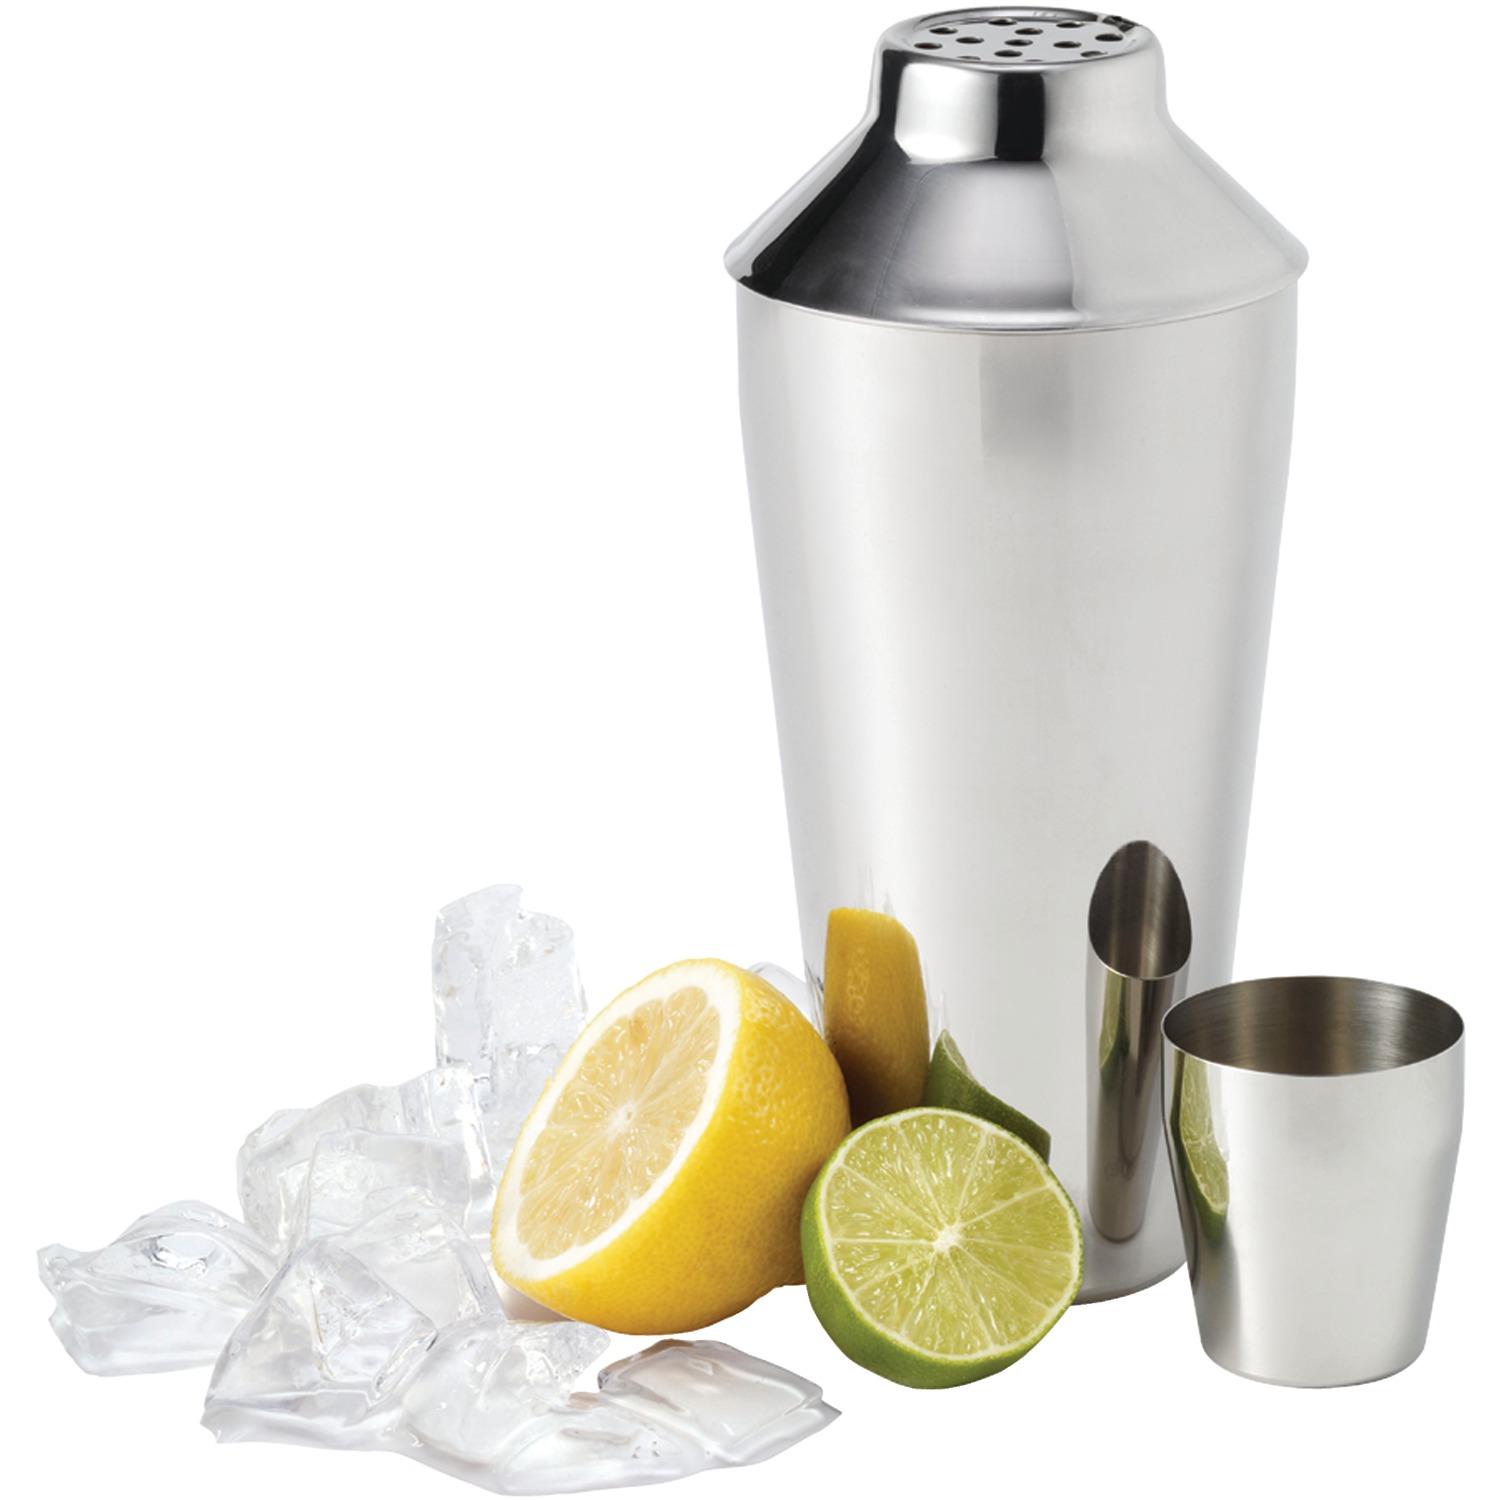 Starfrit 818549021000 Gourmet Cocktail Strainer & Stainless Steel Cocktail Shaker